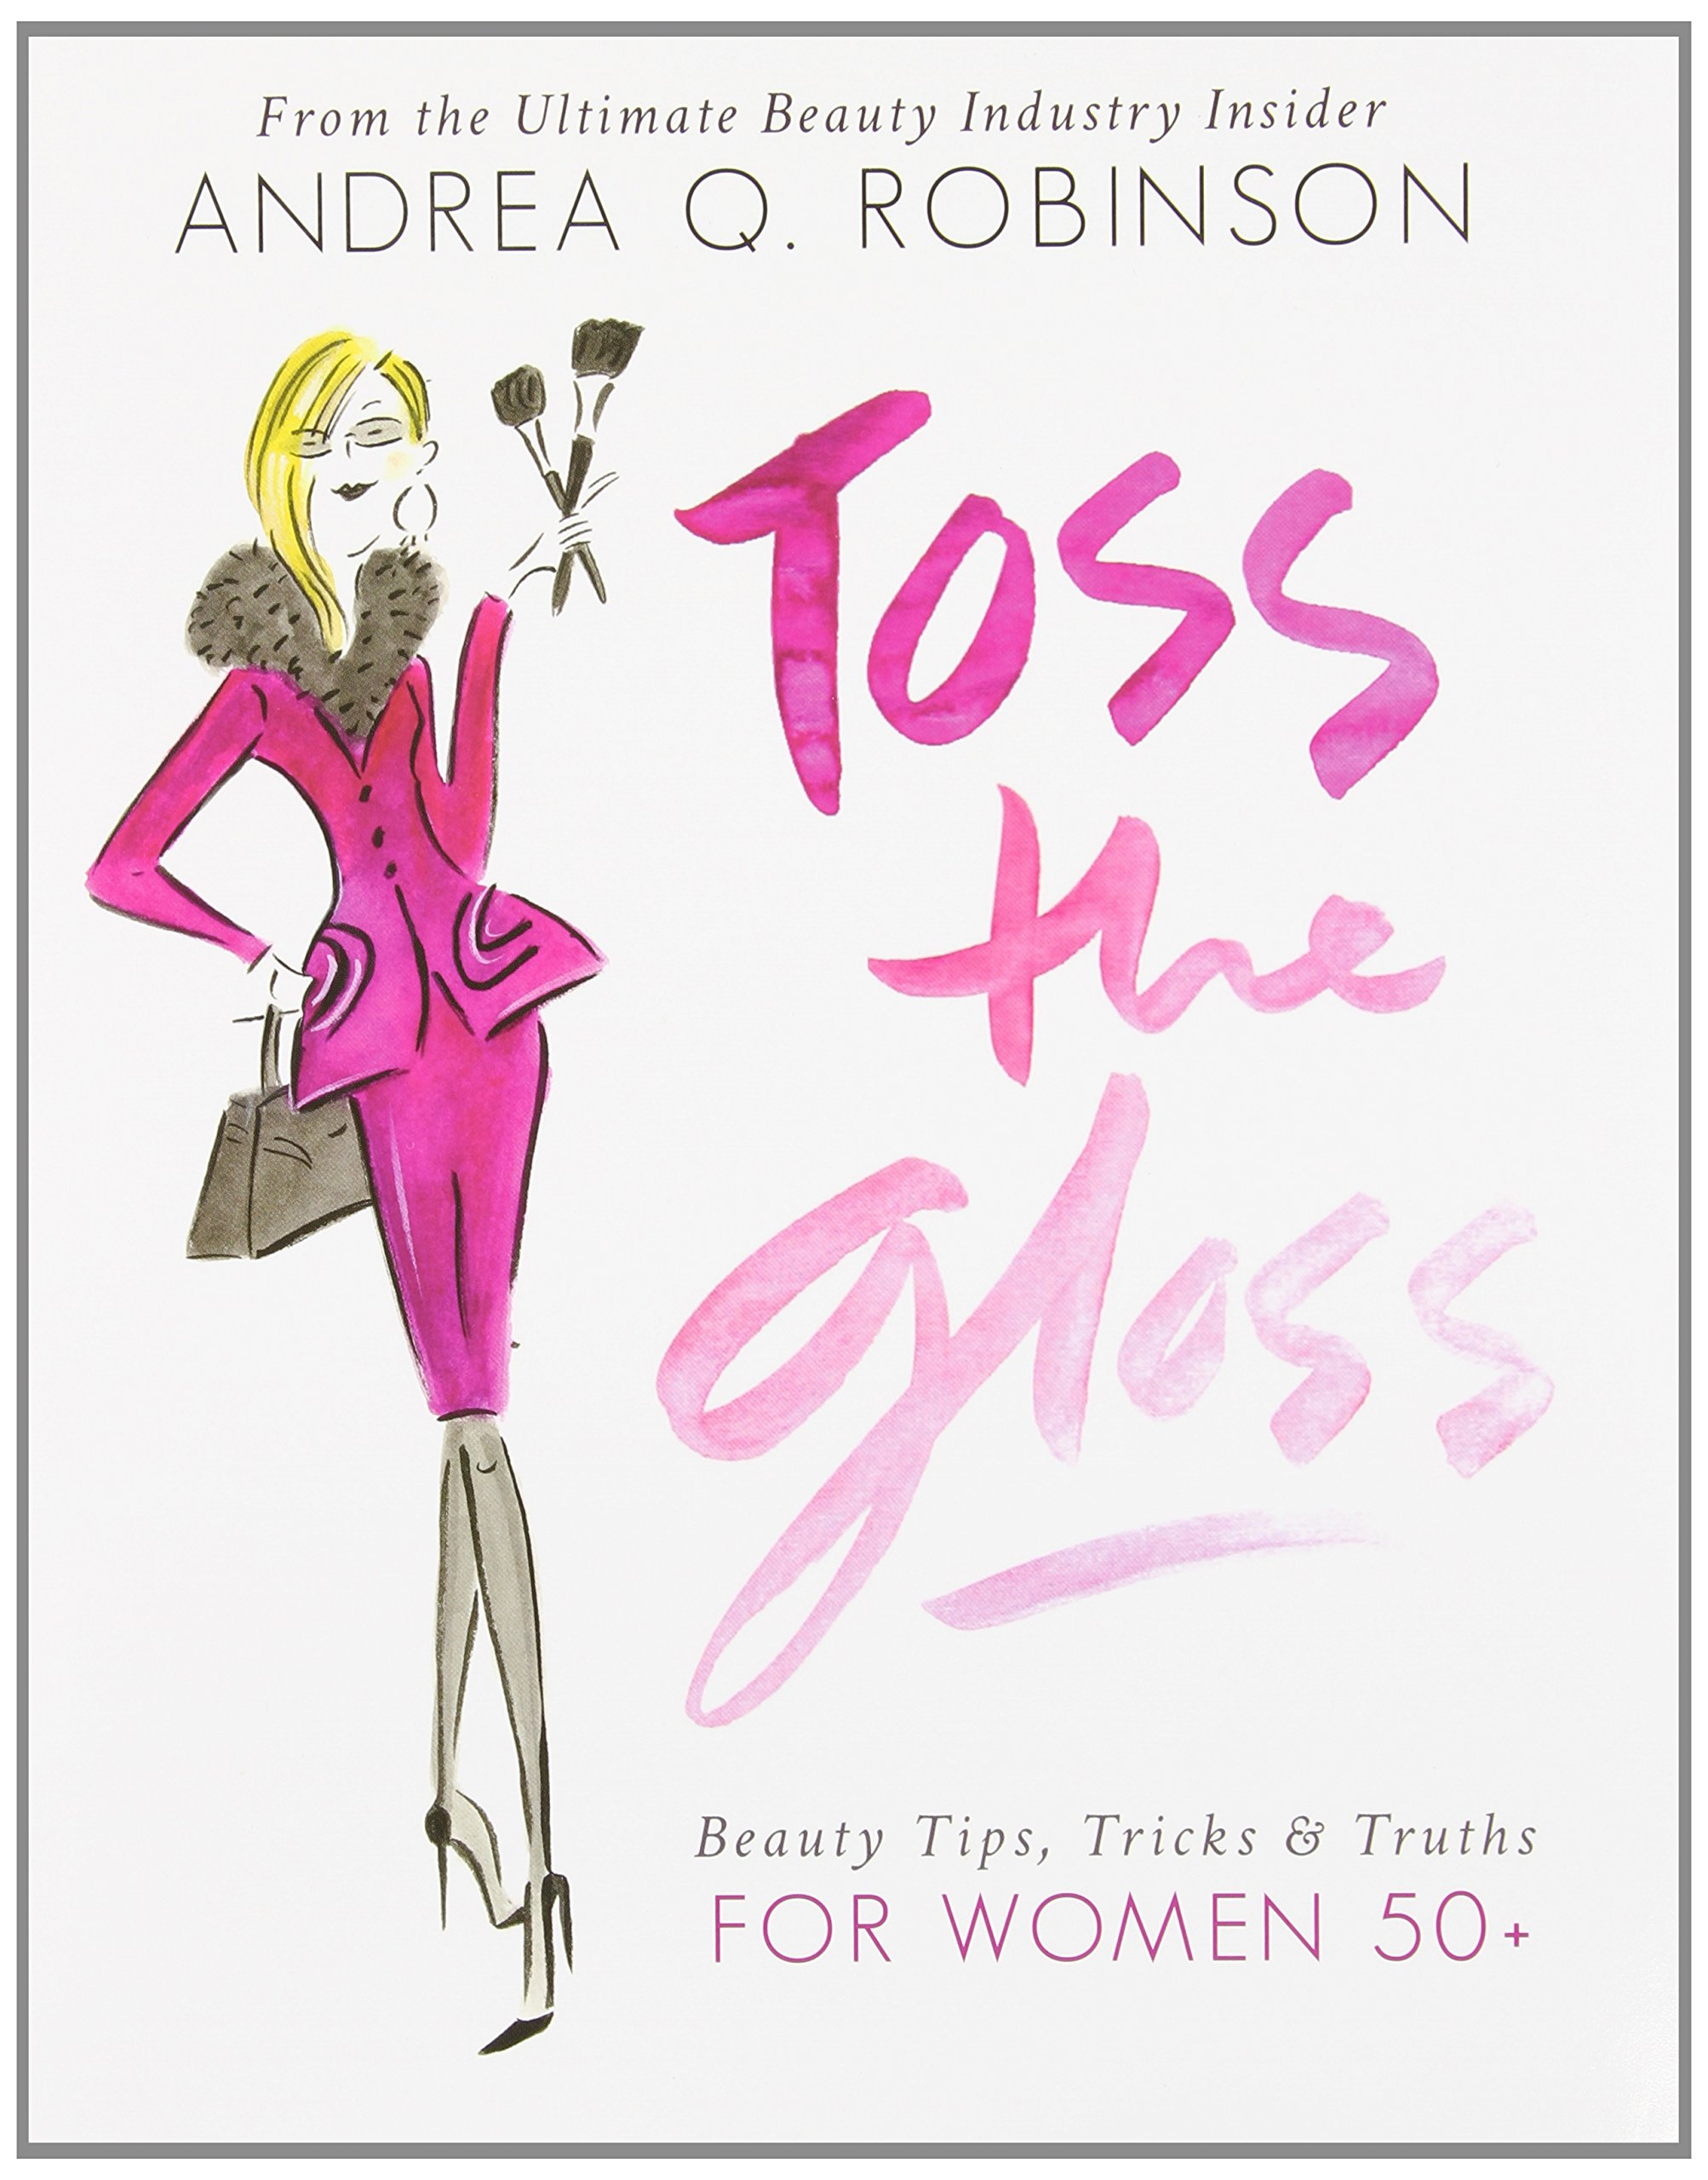 Toss the Gloss: Beauty Tips, Tricks & Truths for Women 50+ pdf epub